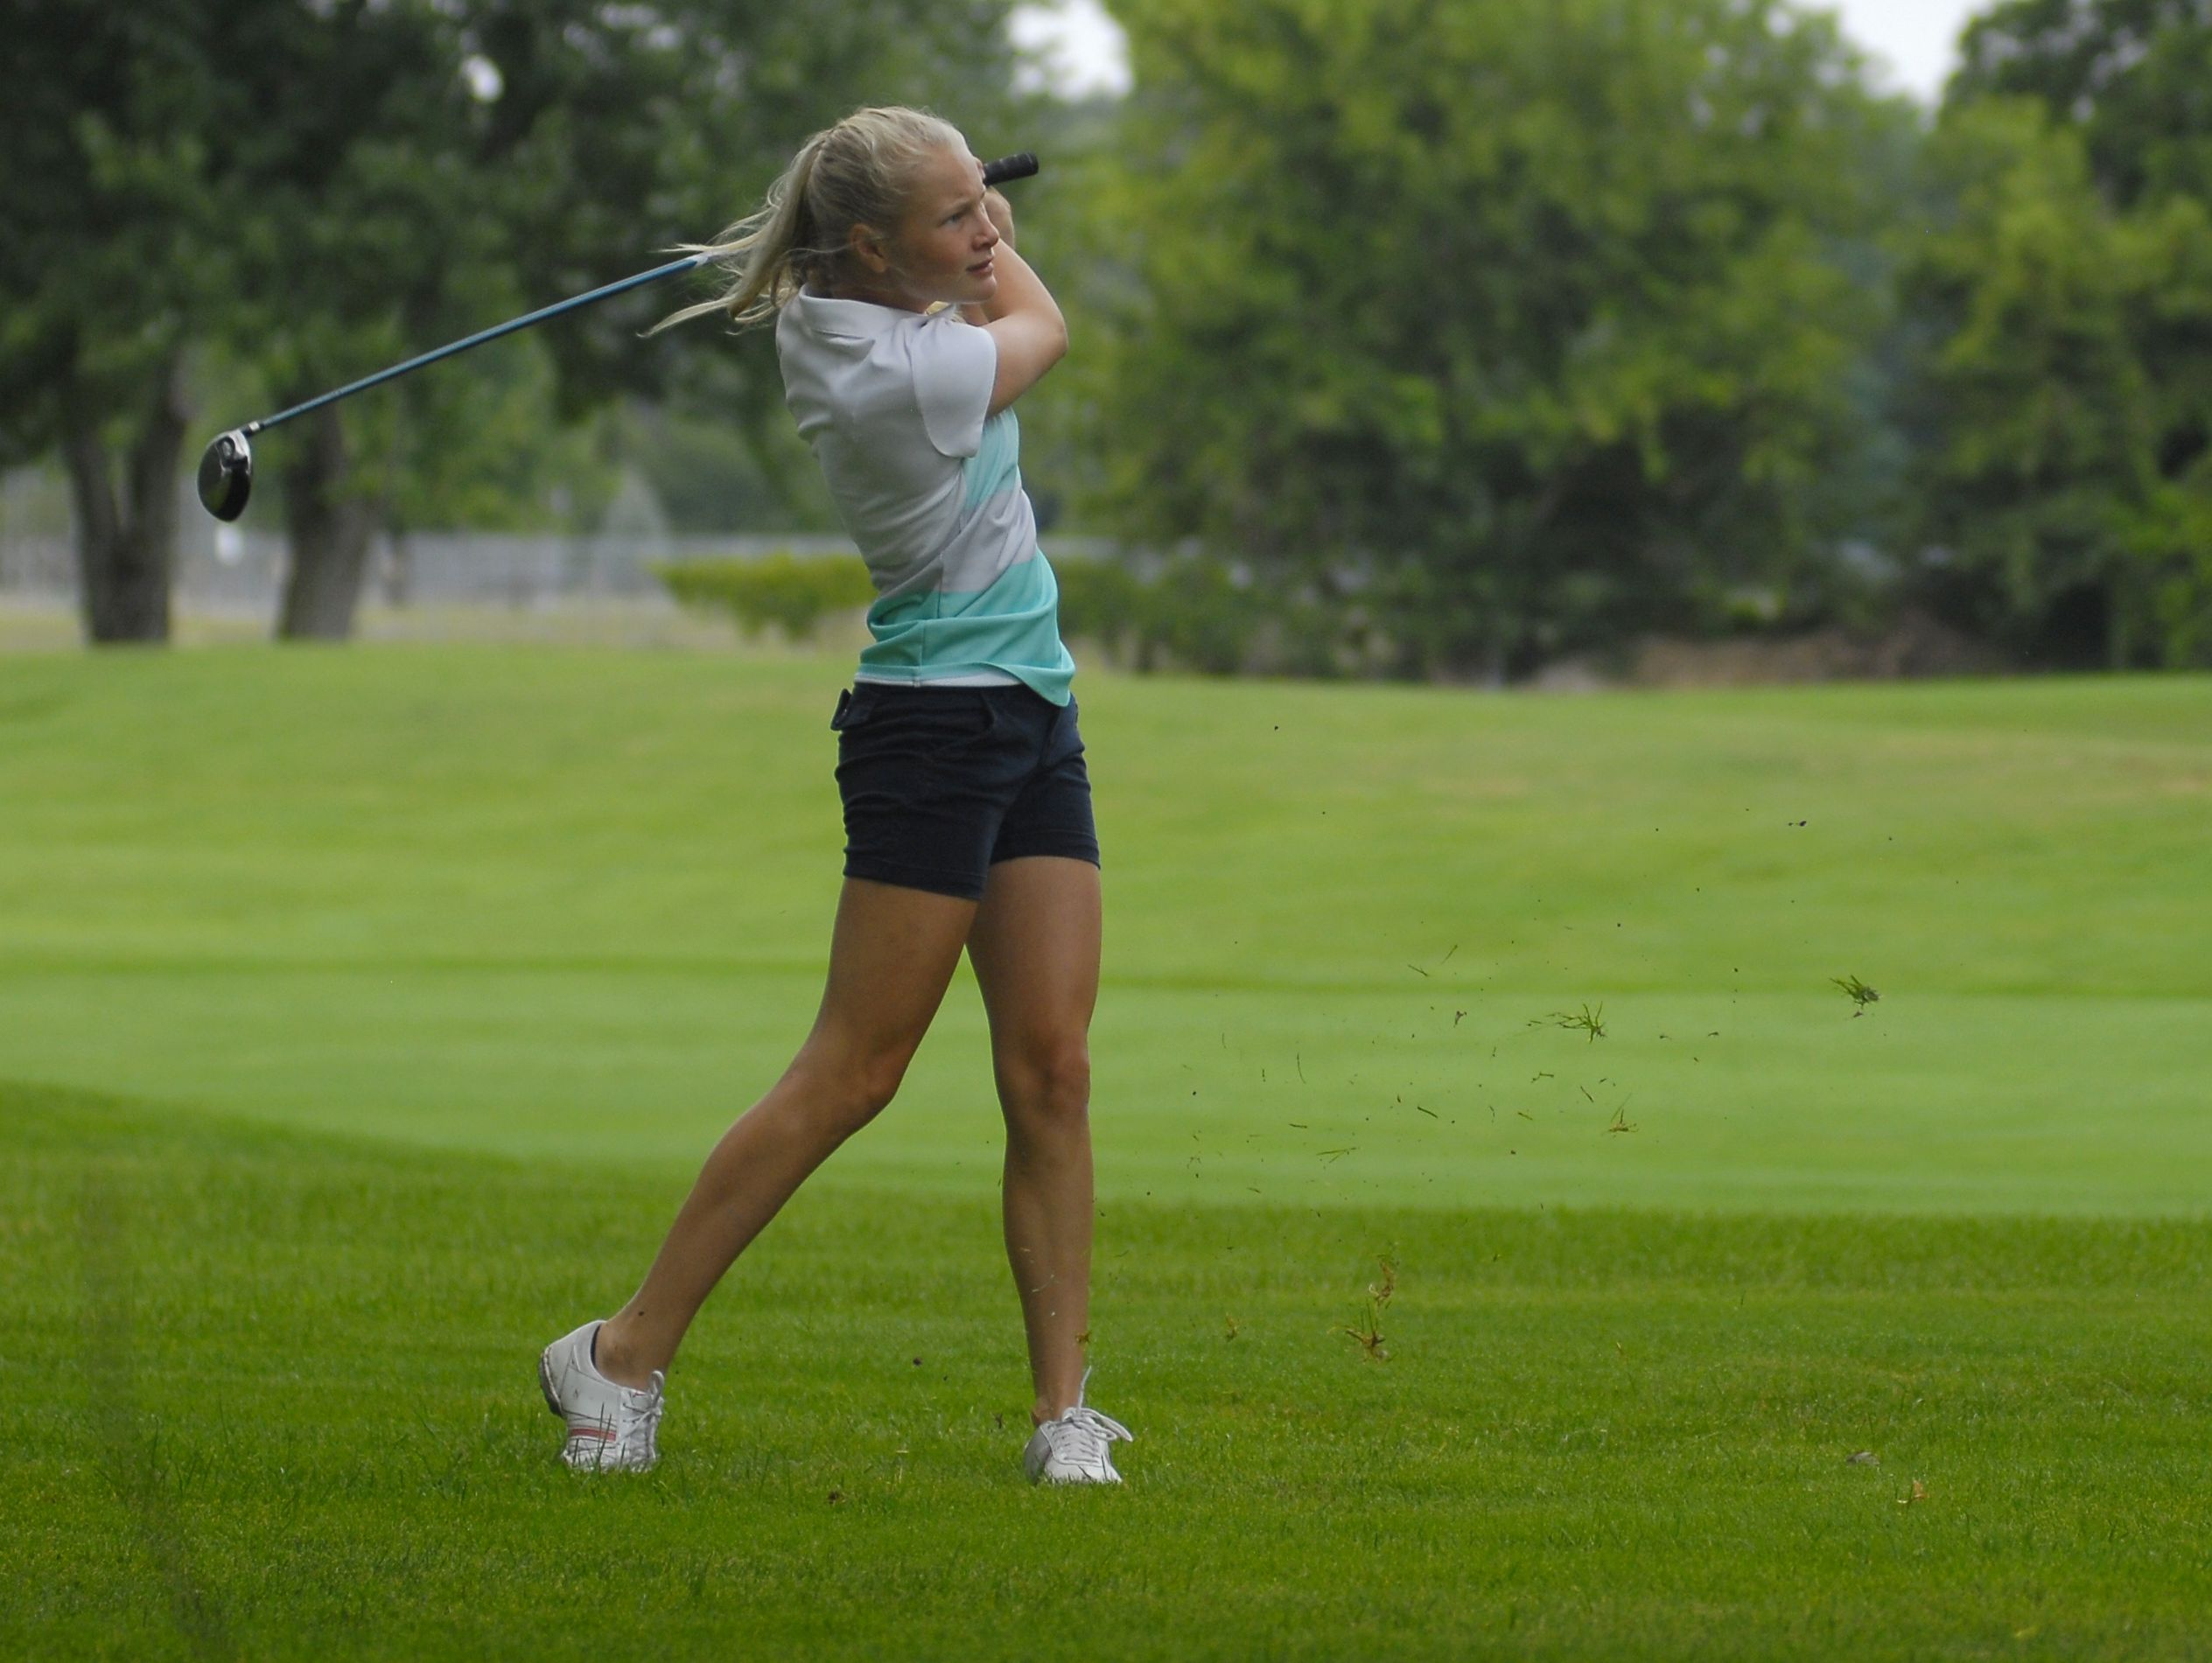 Brandi Kautz of Almont watches her shot Monday, Aug 1, during the Tournament of Champions at the Port Huron Elks Golf Course.